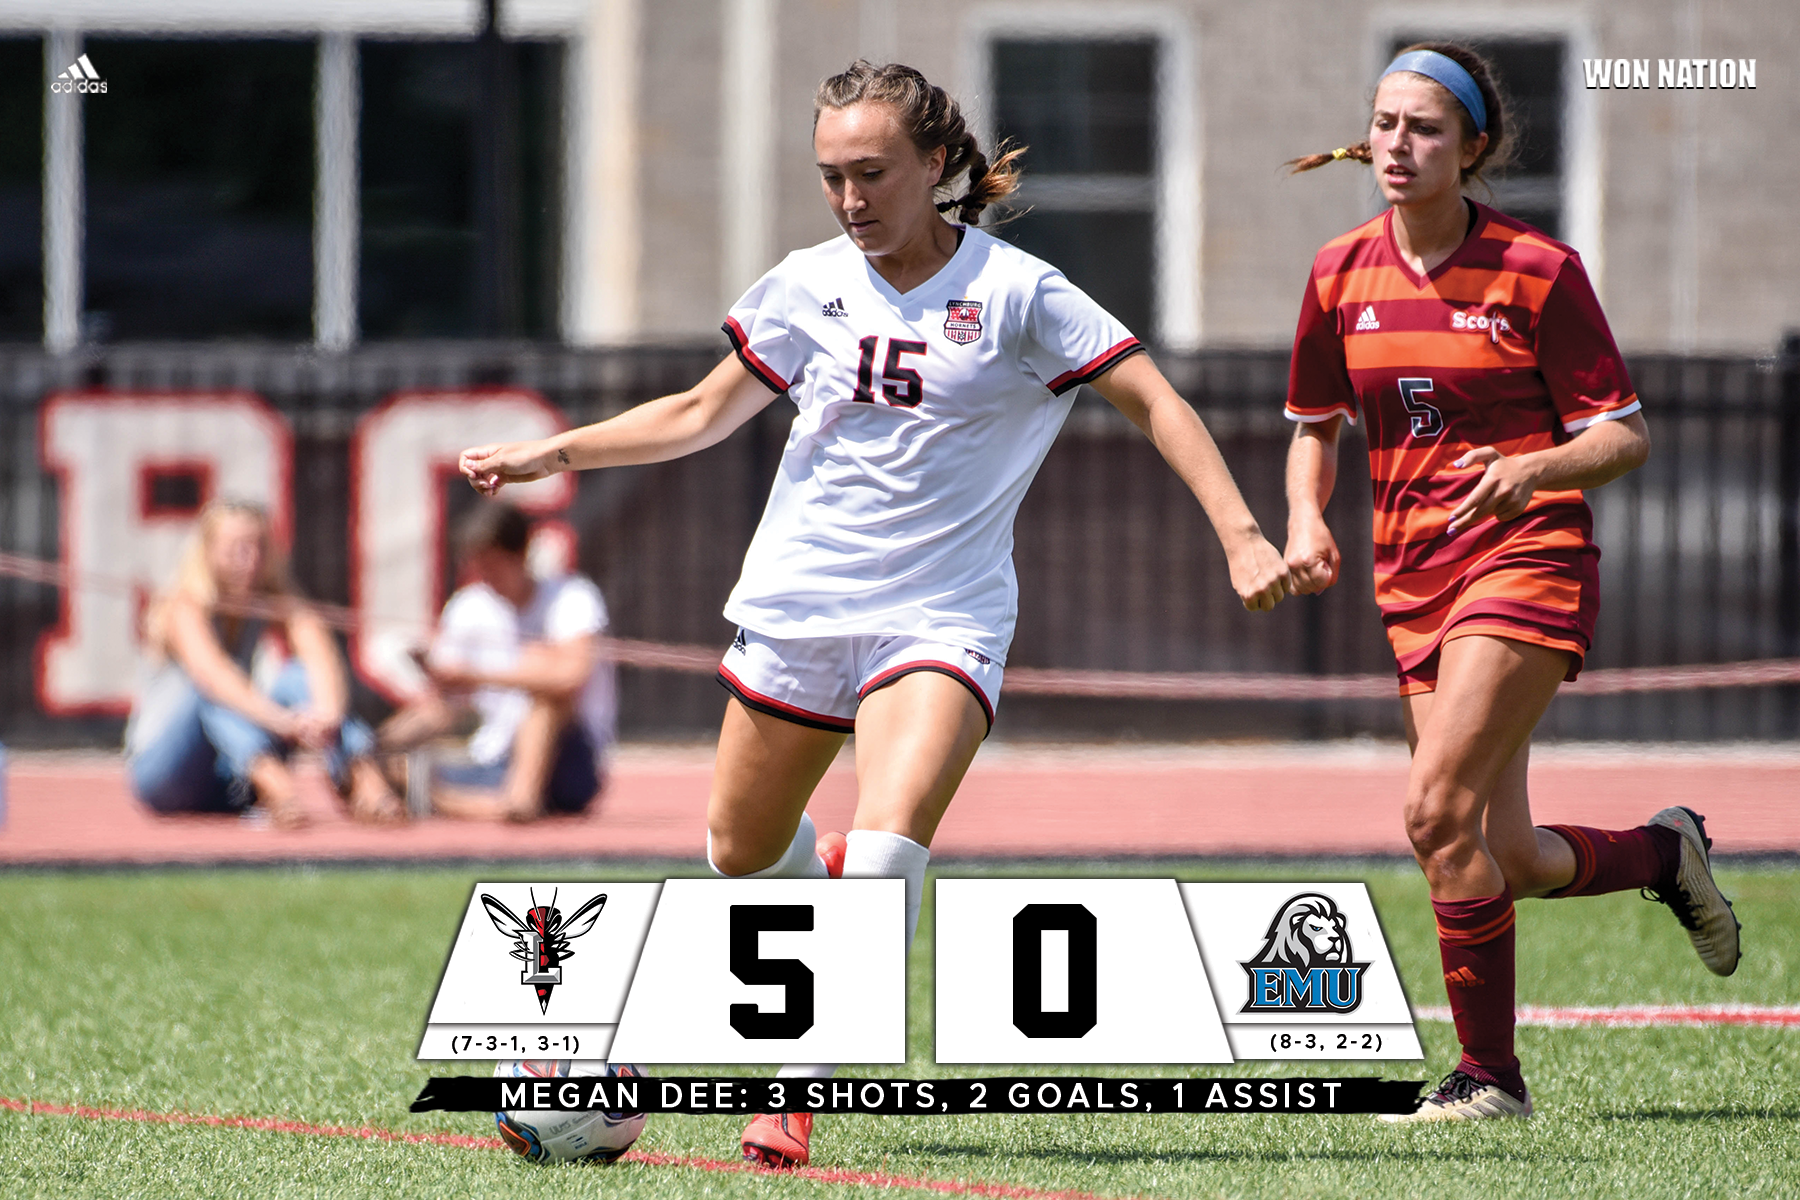 Women's soccer wins third in a row, shuts out EMU